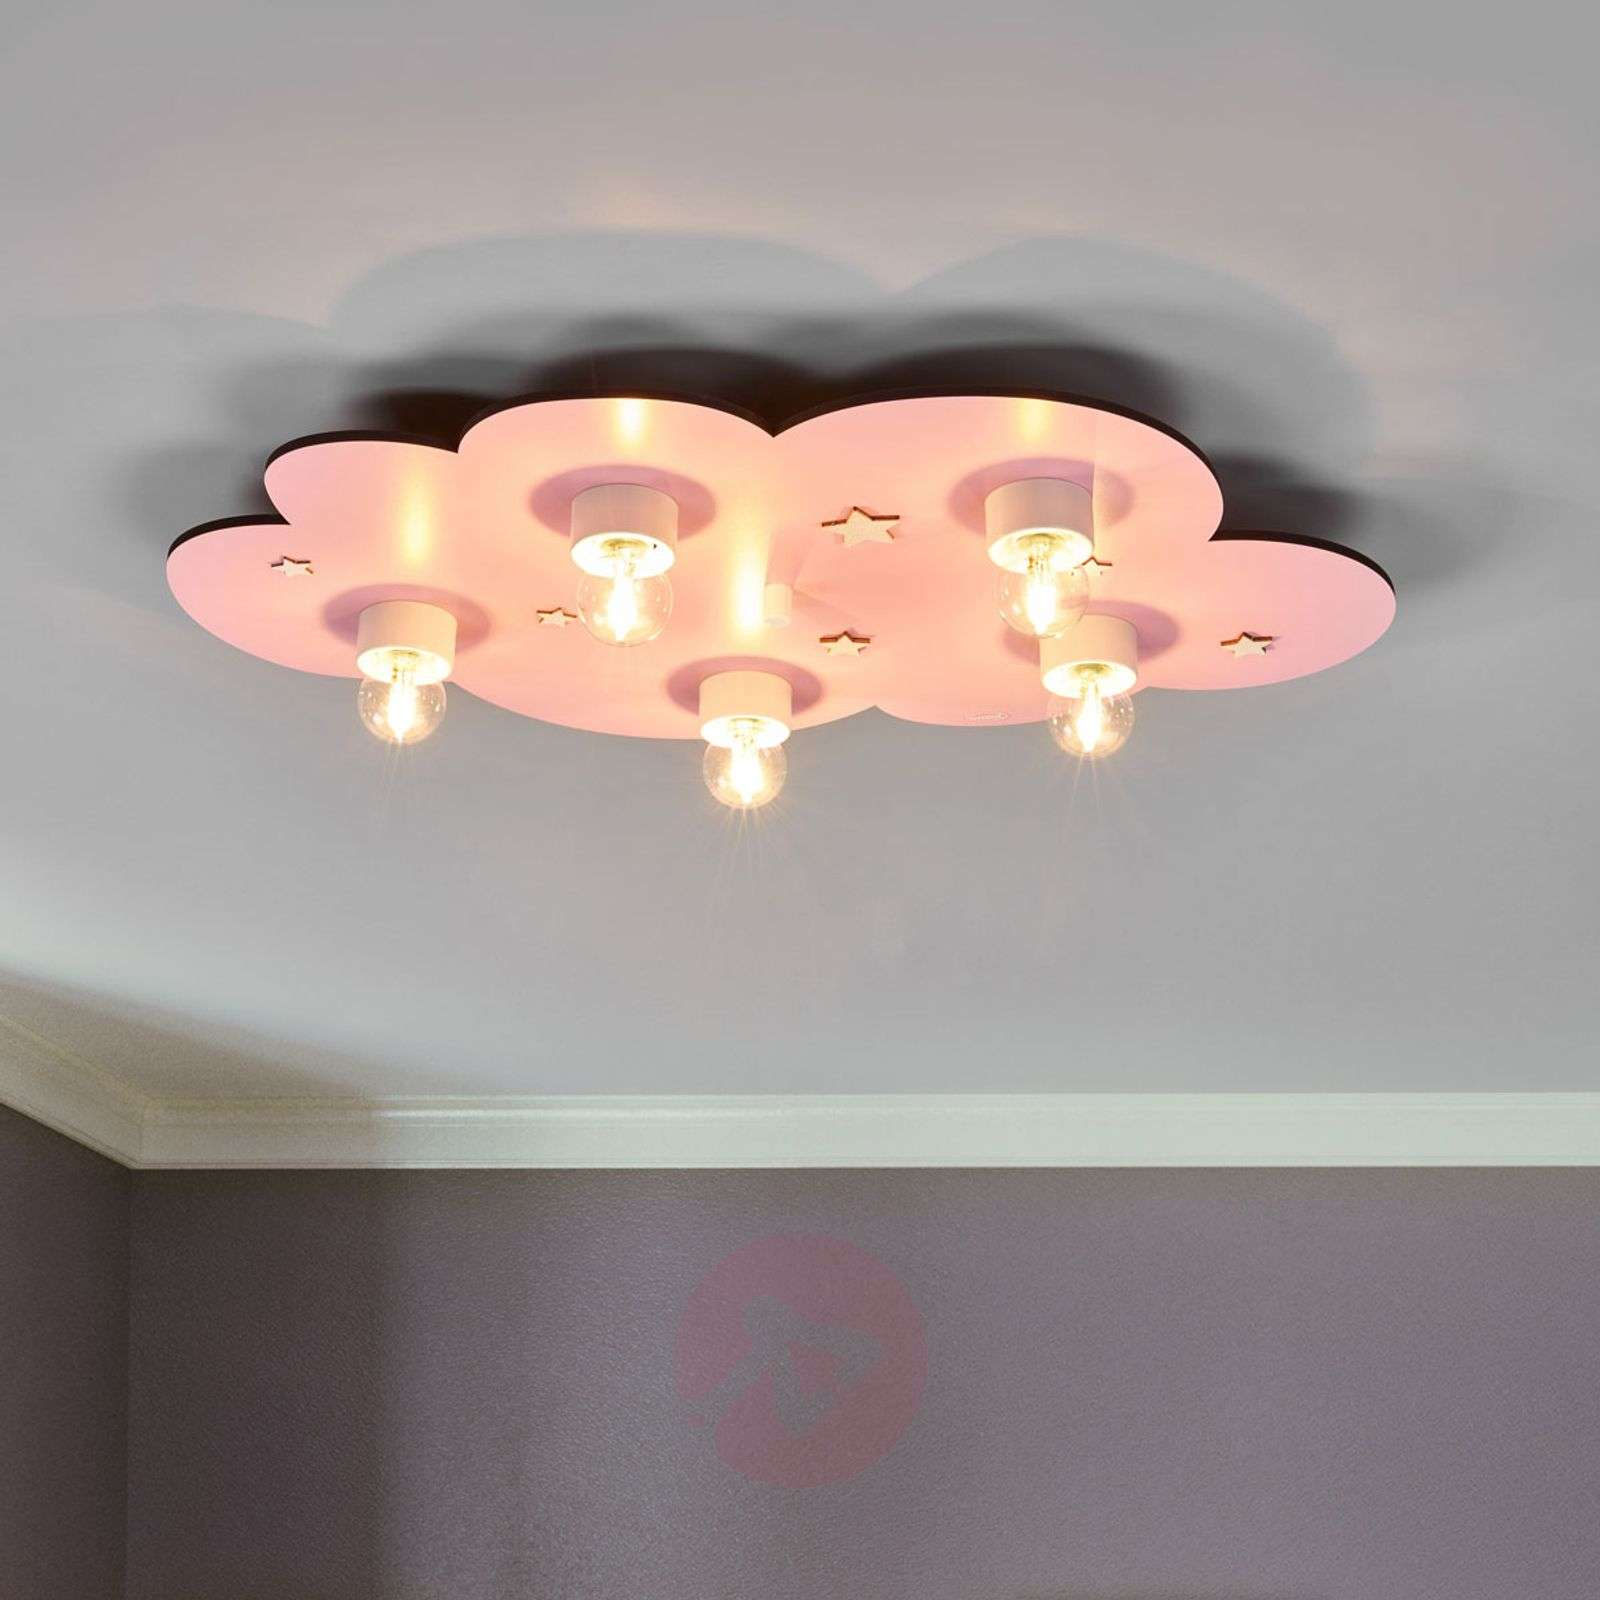 Dreamy Pink Cloud Childrens Ceiling Light 9606068 01